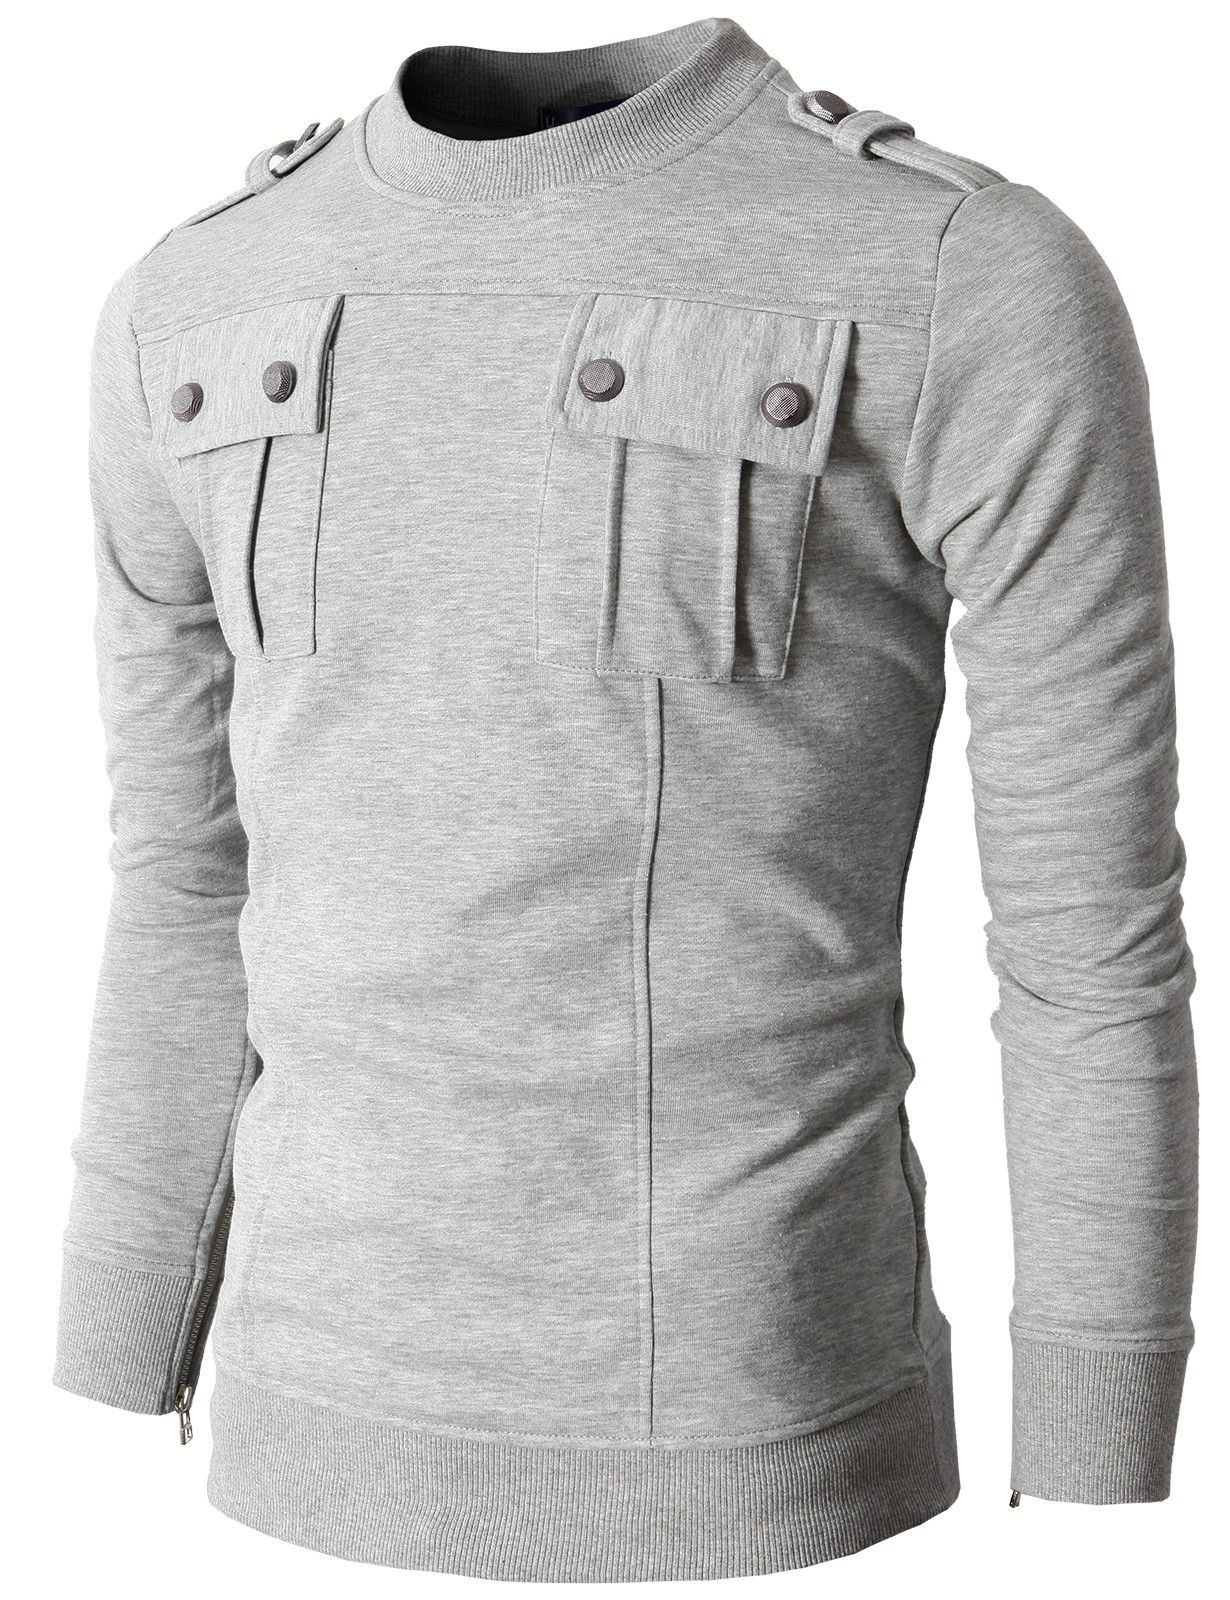 Mens T Shirts With Two Pocket And Shoulder Epaulet Kmttl017